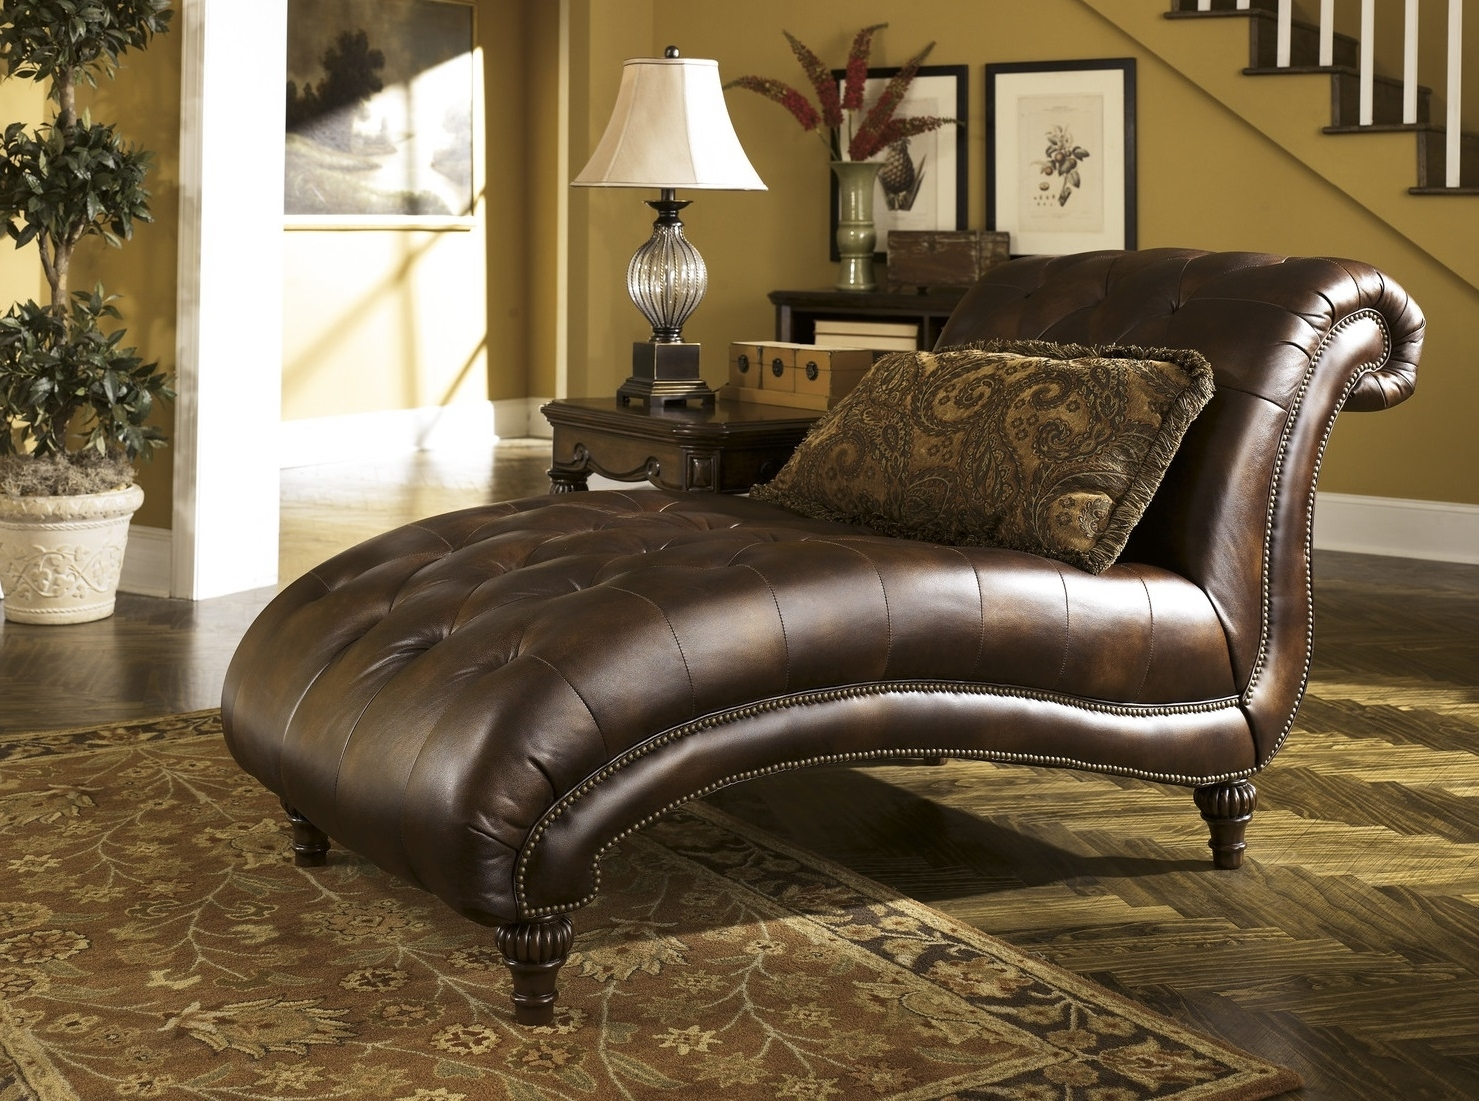 Repair A Cracked Leather Chaise Lounge Chair — Bed And Shower Intended For Famous Tufted Leather Chaises (View 6 of 15)